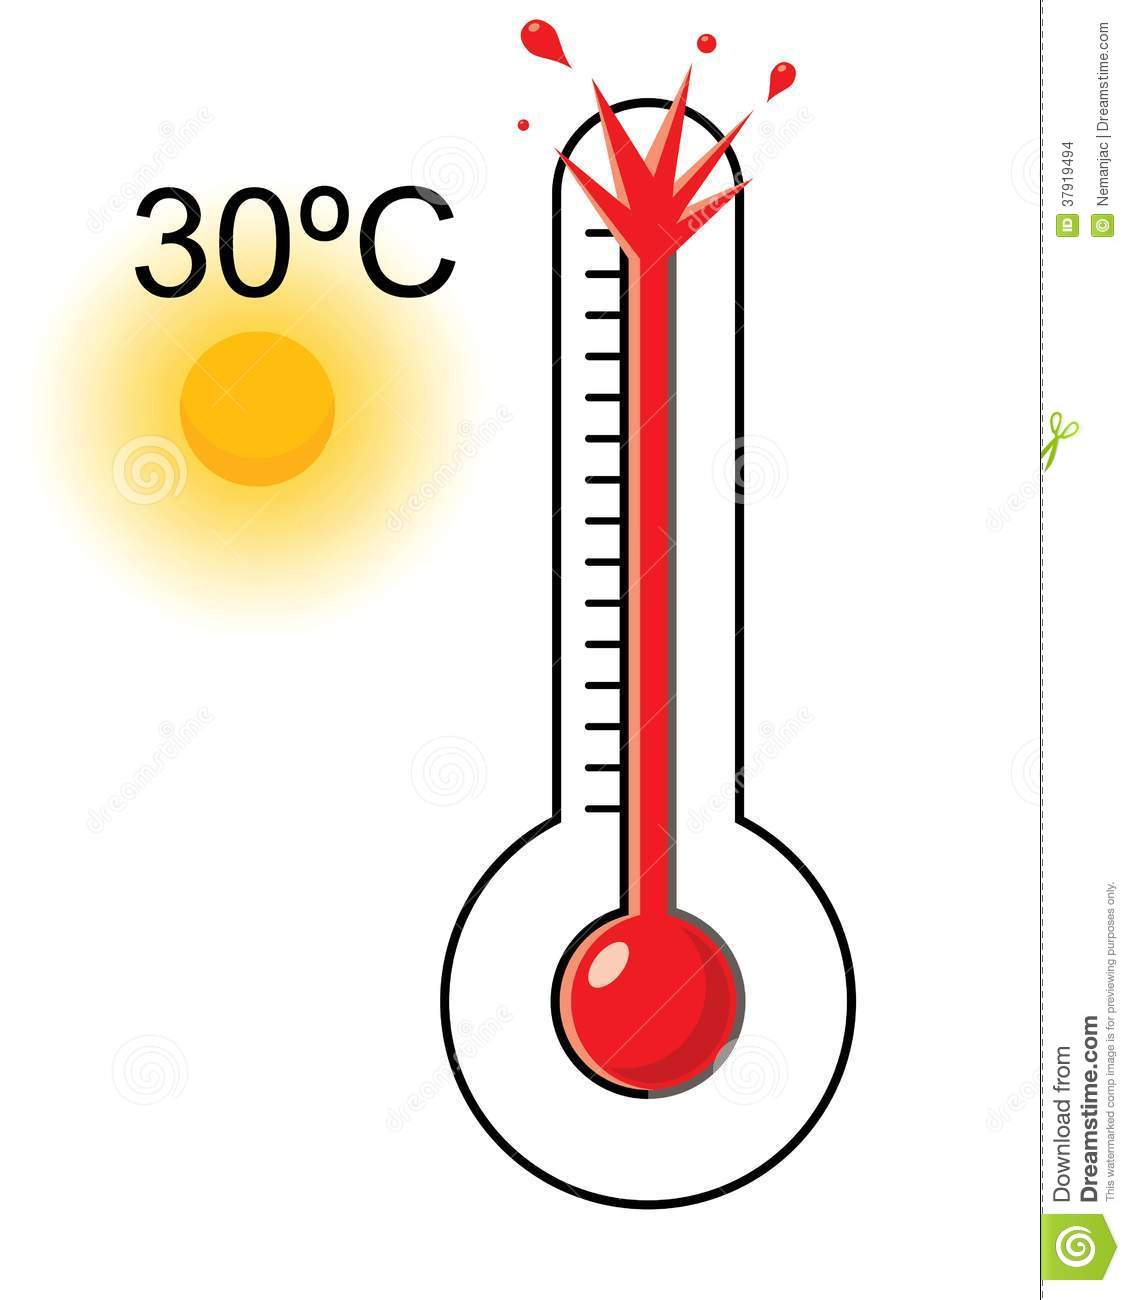 Clipart thermometer coloured. Hot and cold free